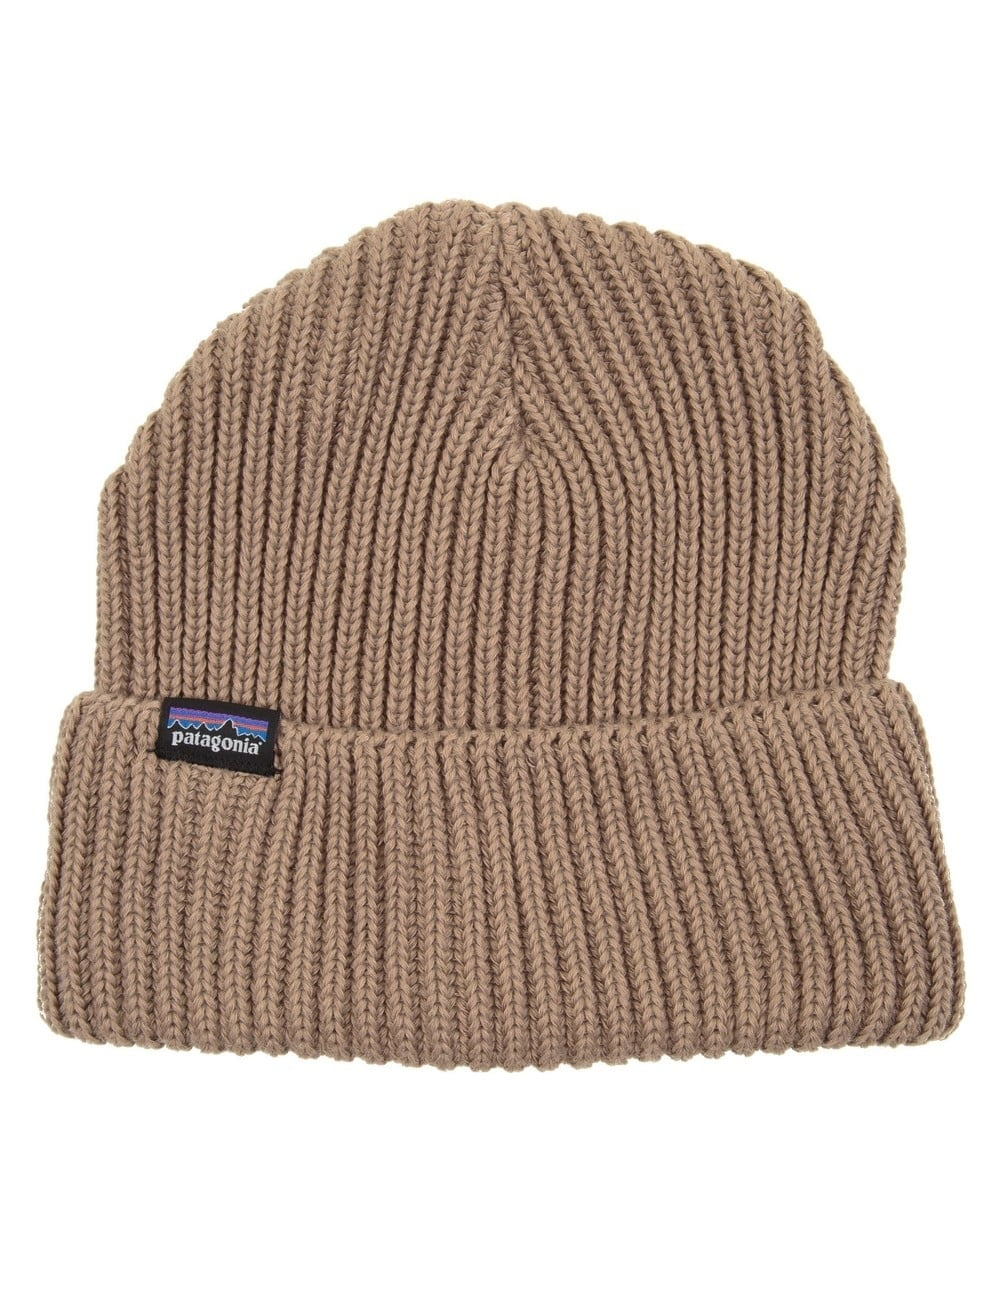 806e7bdf7b3 Patagonia Fisherman s Rolled Beanie - Ash Tan - Accessories from Fat ...